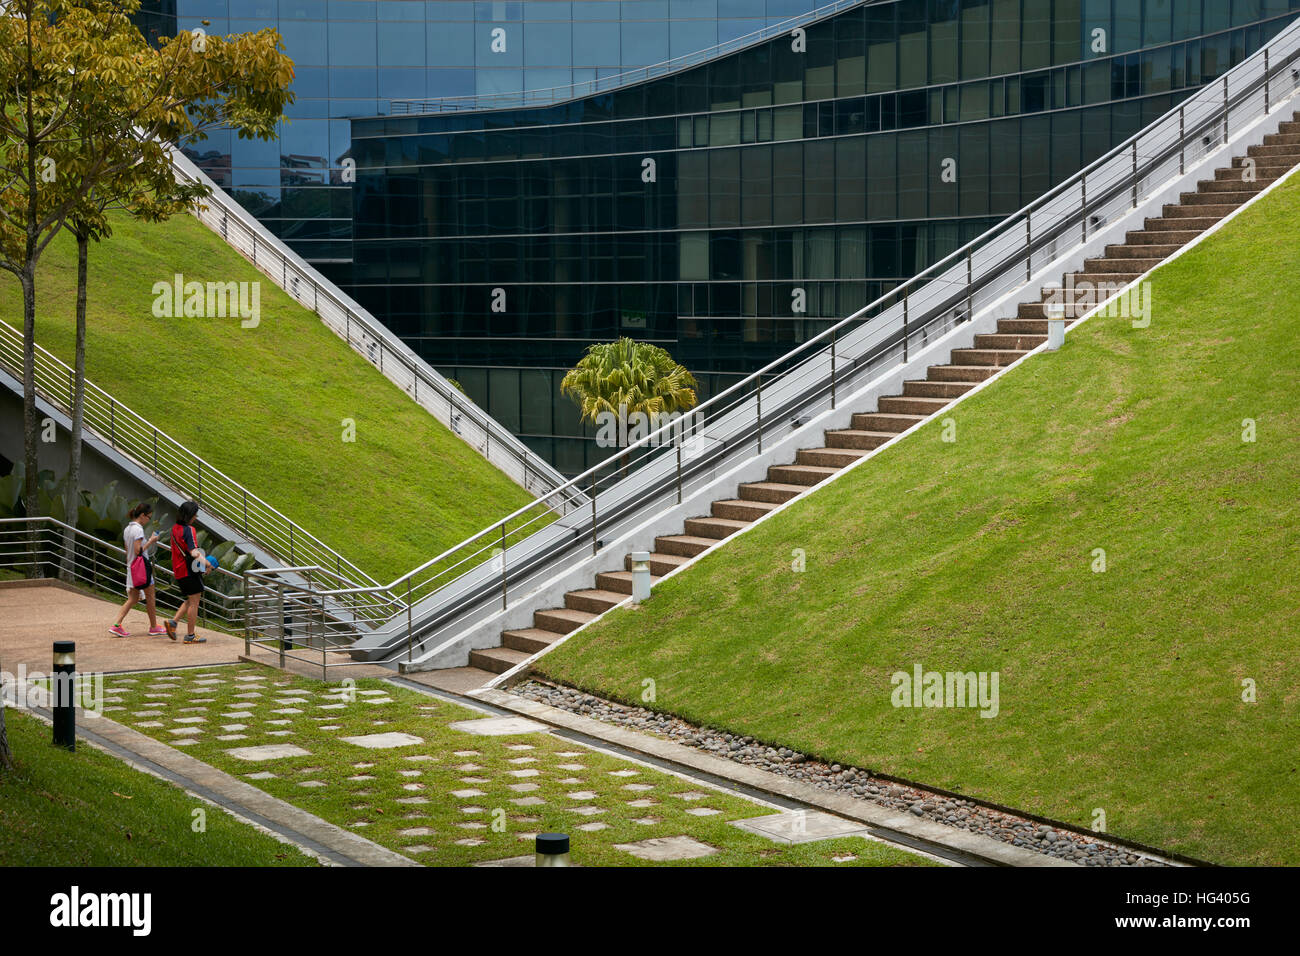 Nanyang Technological University (NTU) School of Art, Design and Media (ADM), Singapore. - Stock Image